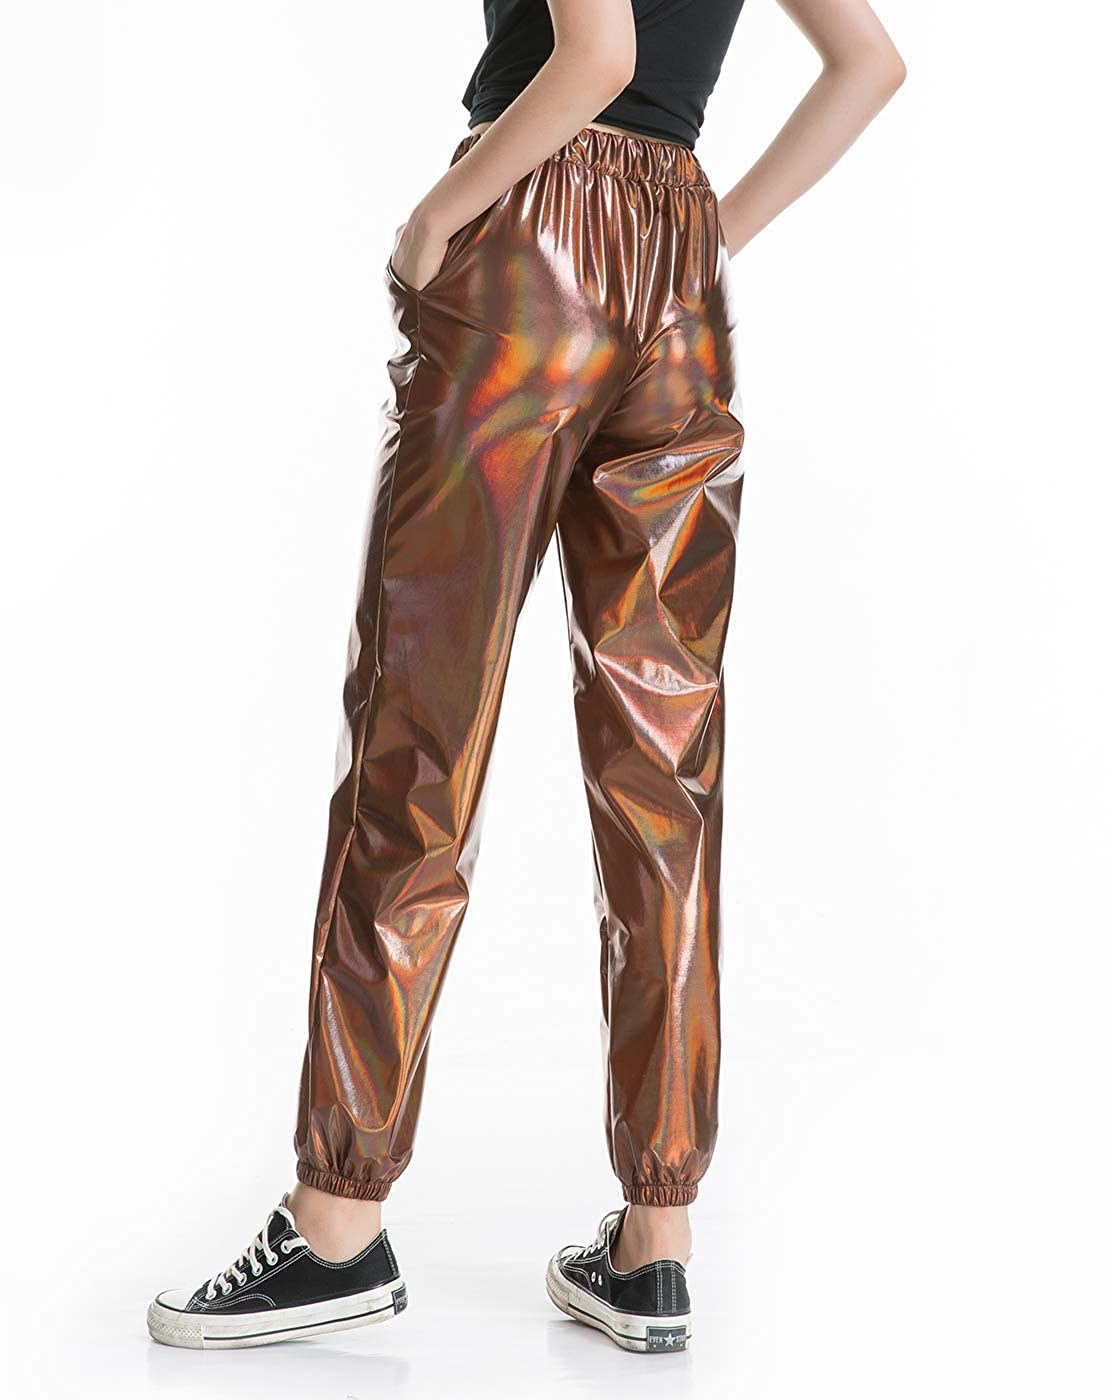 Zaxicht Womens Metallic Shiny Jogger Pants Casual High Waisted Harem Pant Holographic Color Hip Hop Trousers Streetwear